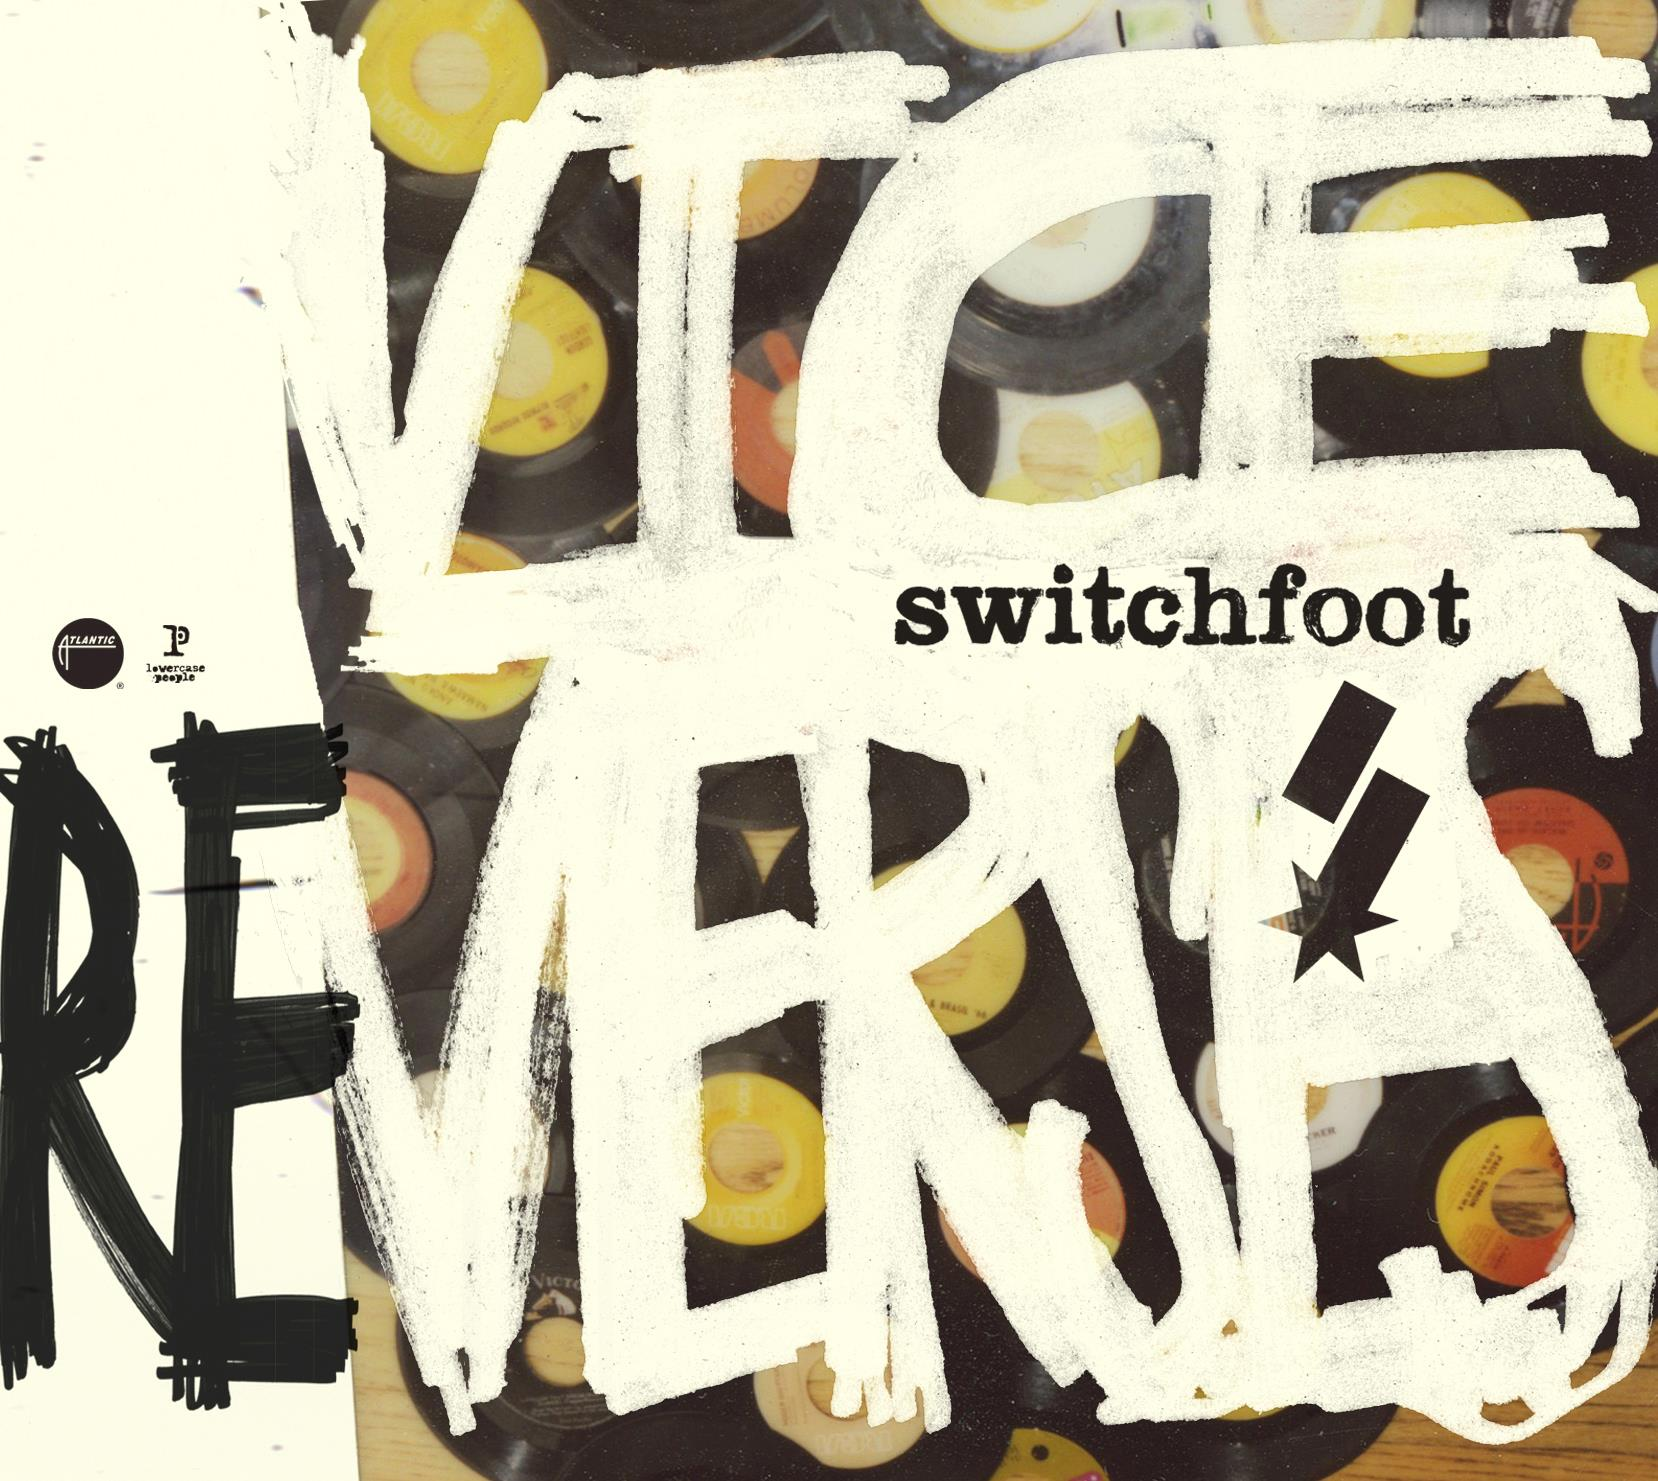 Switchfoot 2012